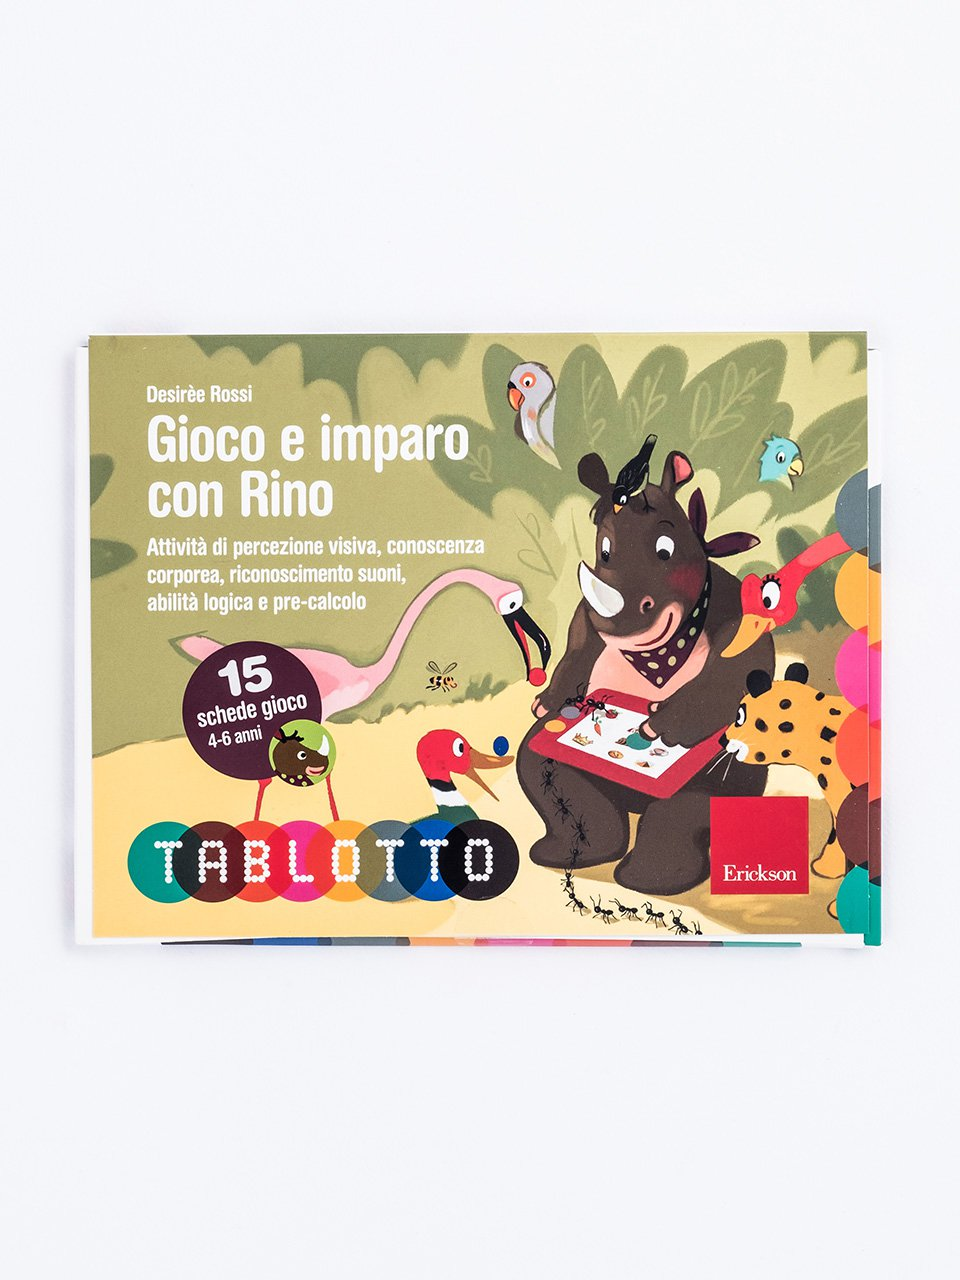 Schede per Tablotto (4-6 anni) - Gioco e imparo con Rino - Come facilitare una Family group conference - Libri - Erickson